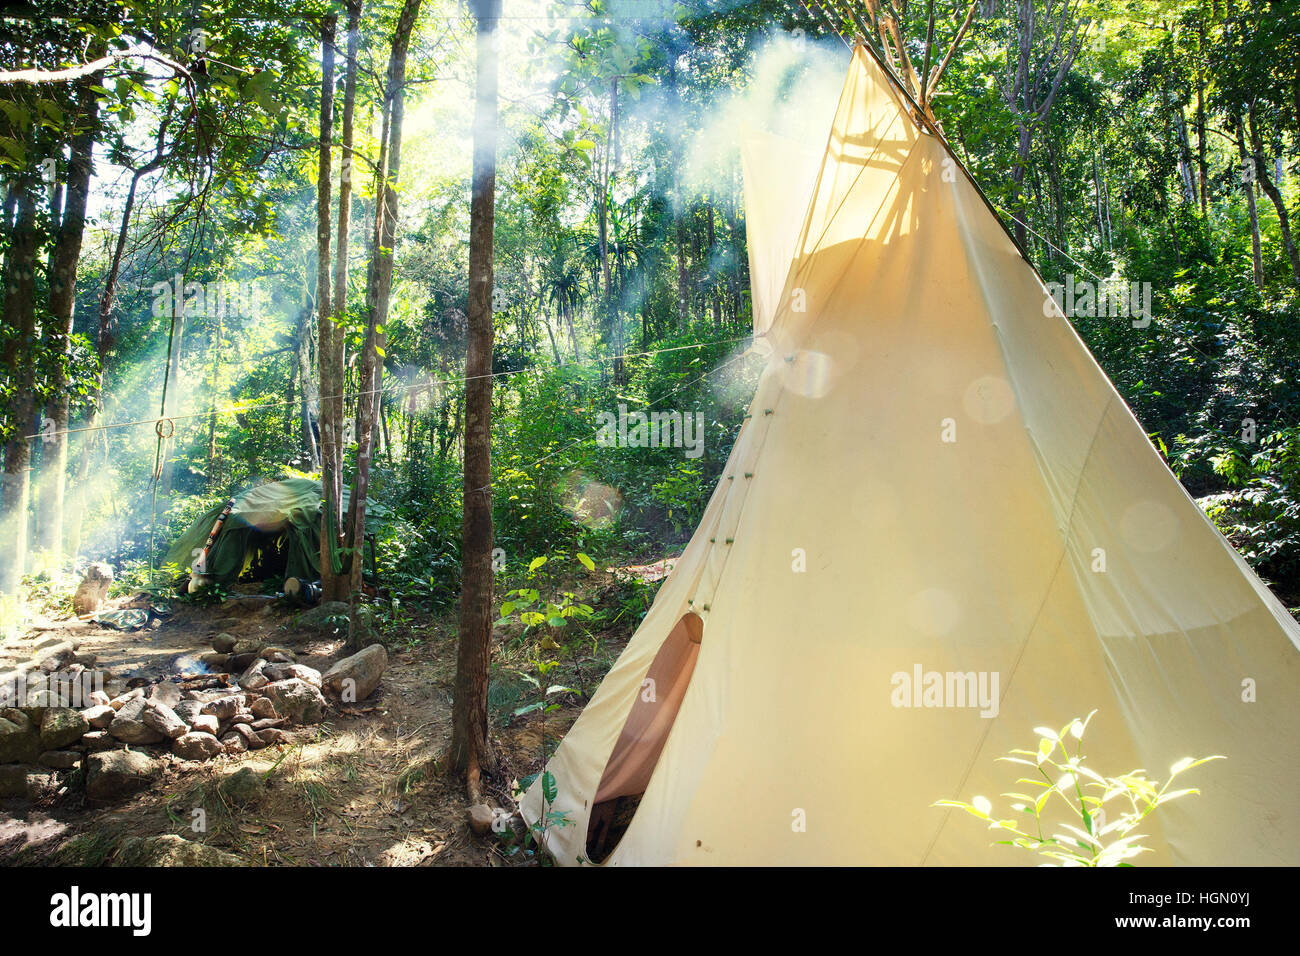 Mexican or Indian Sauna Hut - Stock image - Stock Image